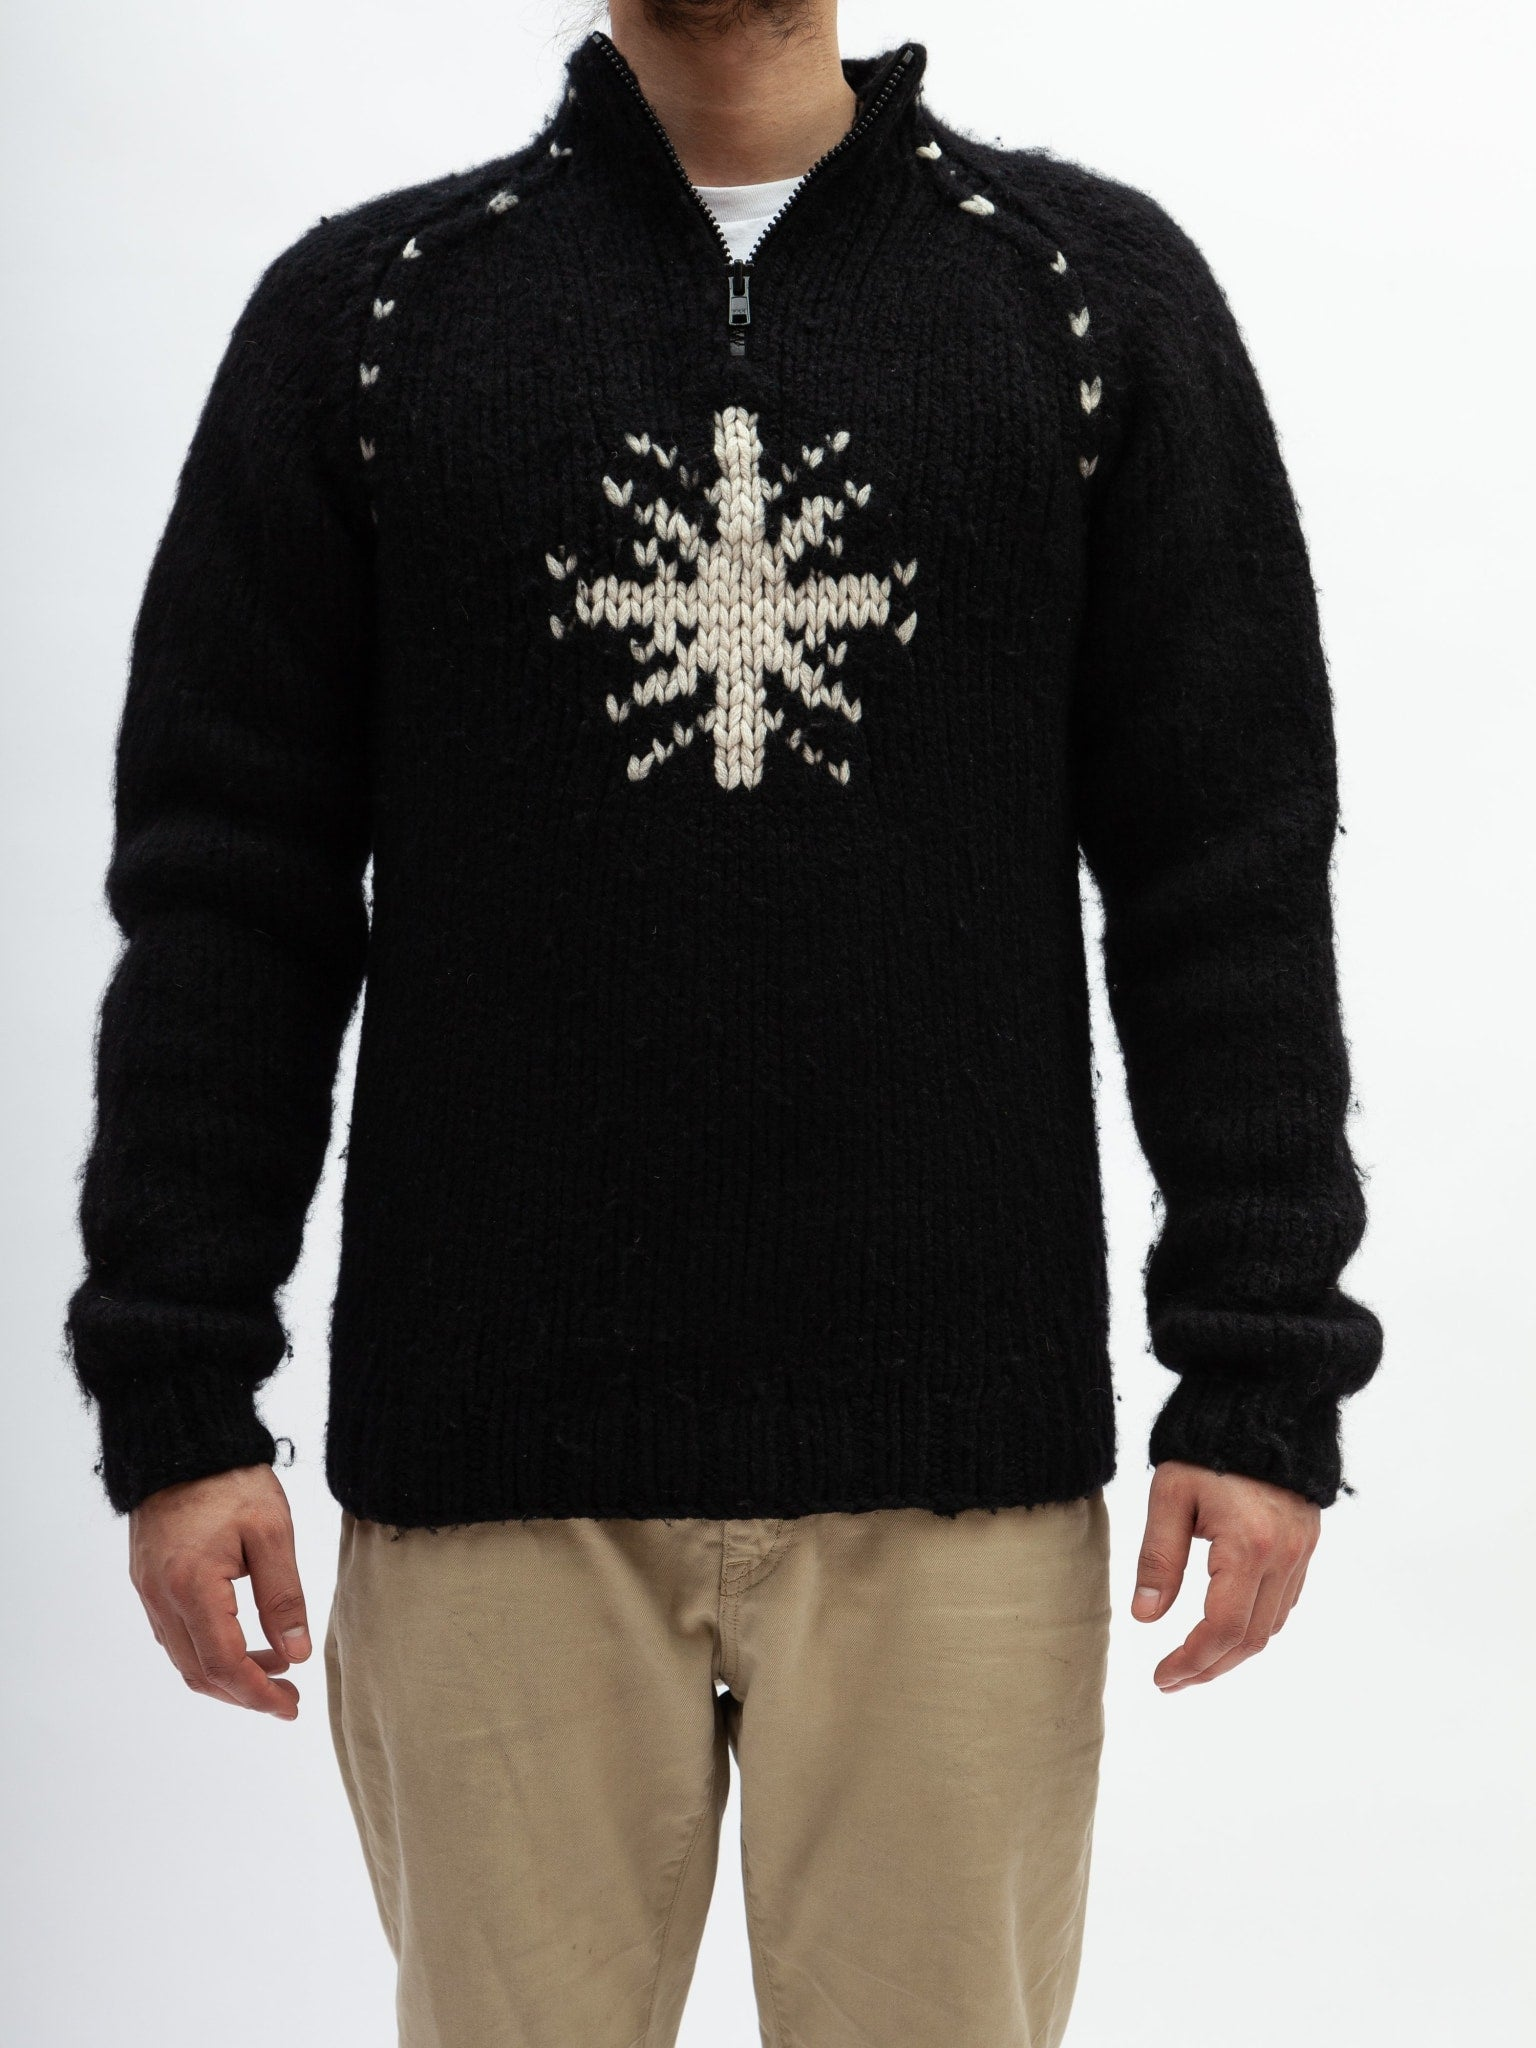 Valens (M) - Homme $32.00